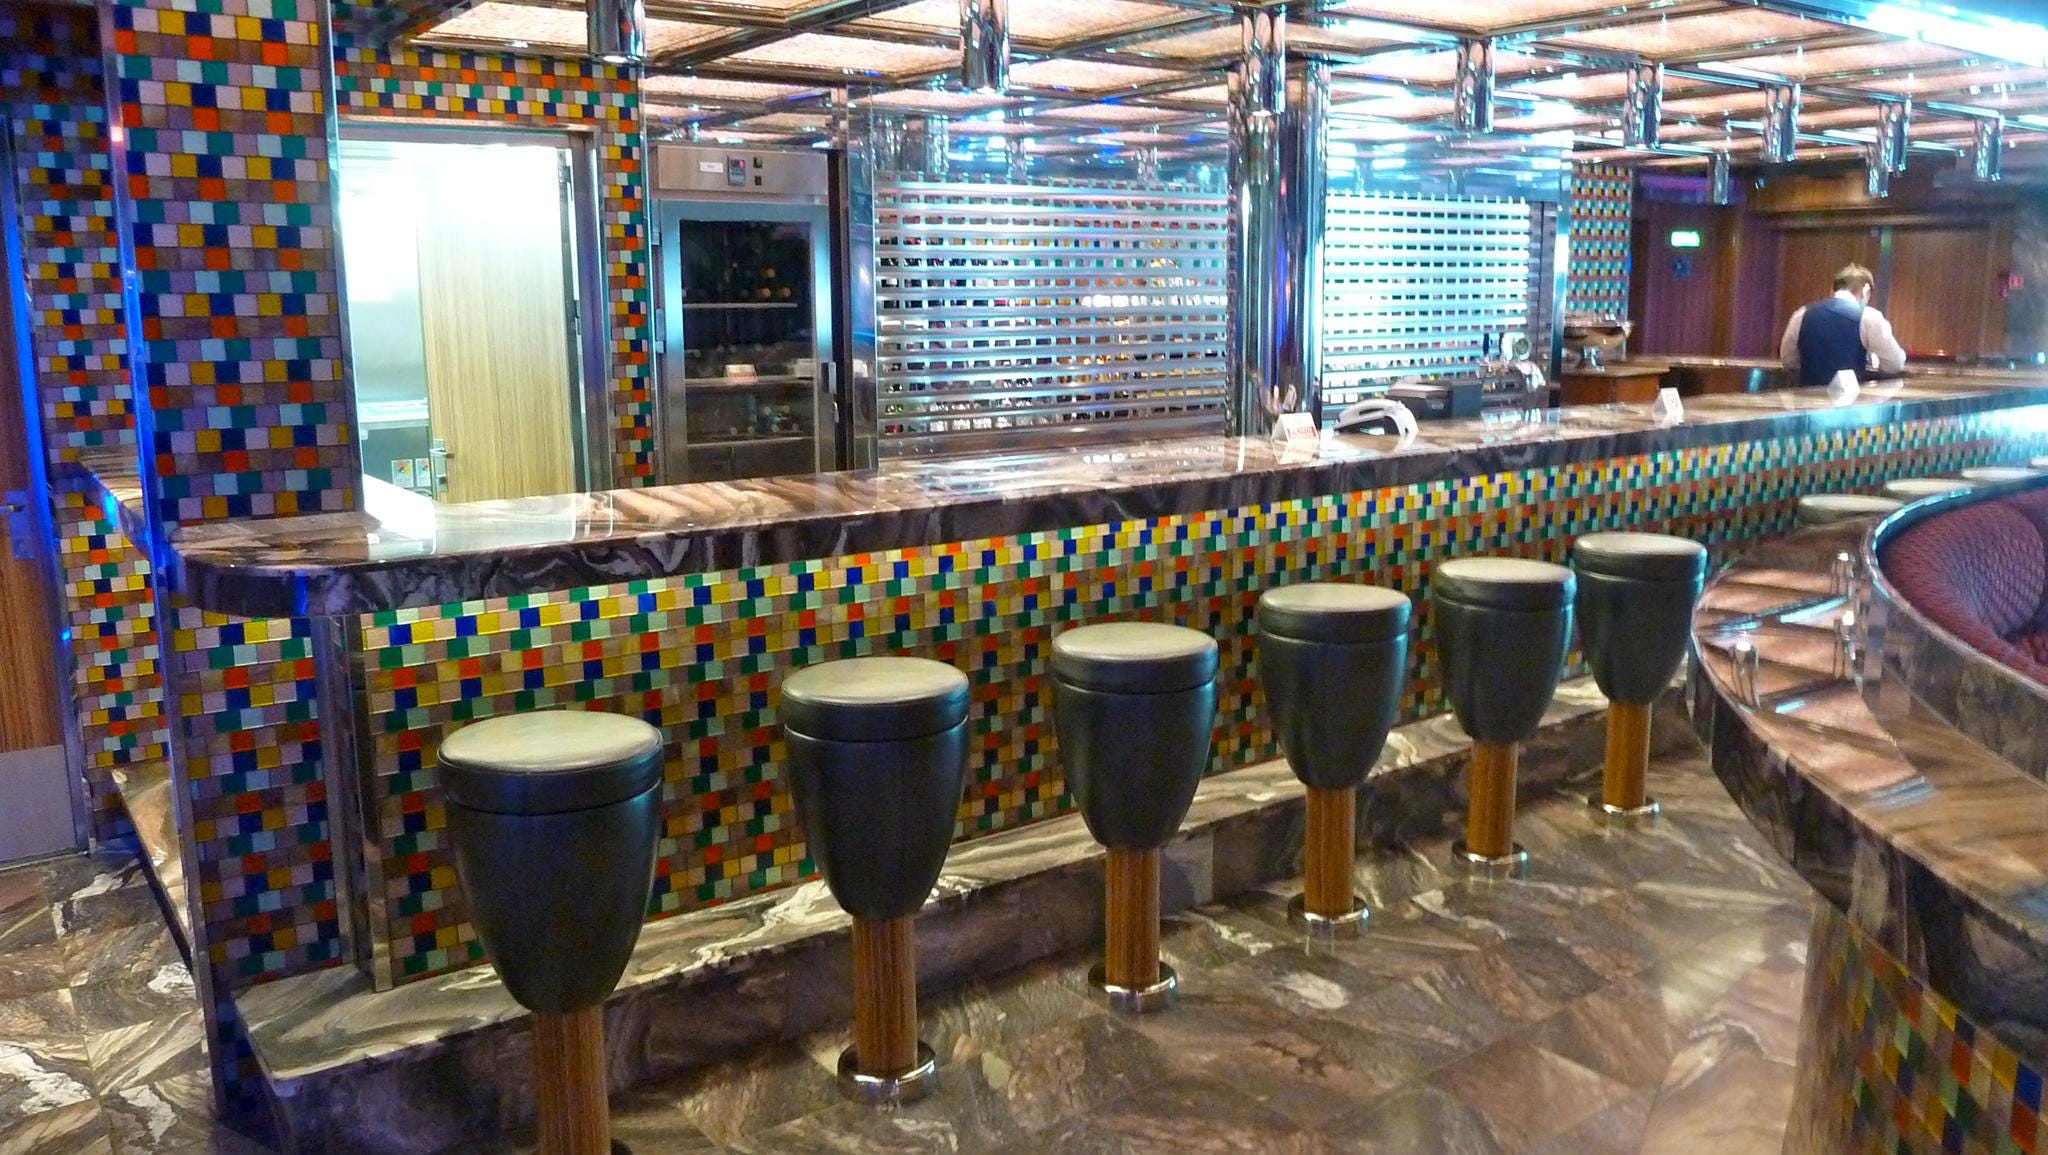 The Piano Bar, itself, is festooned with multi-colored glass tiles.